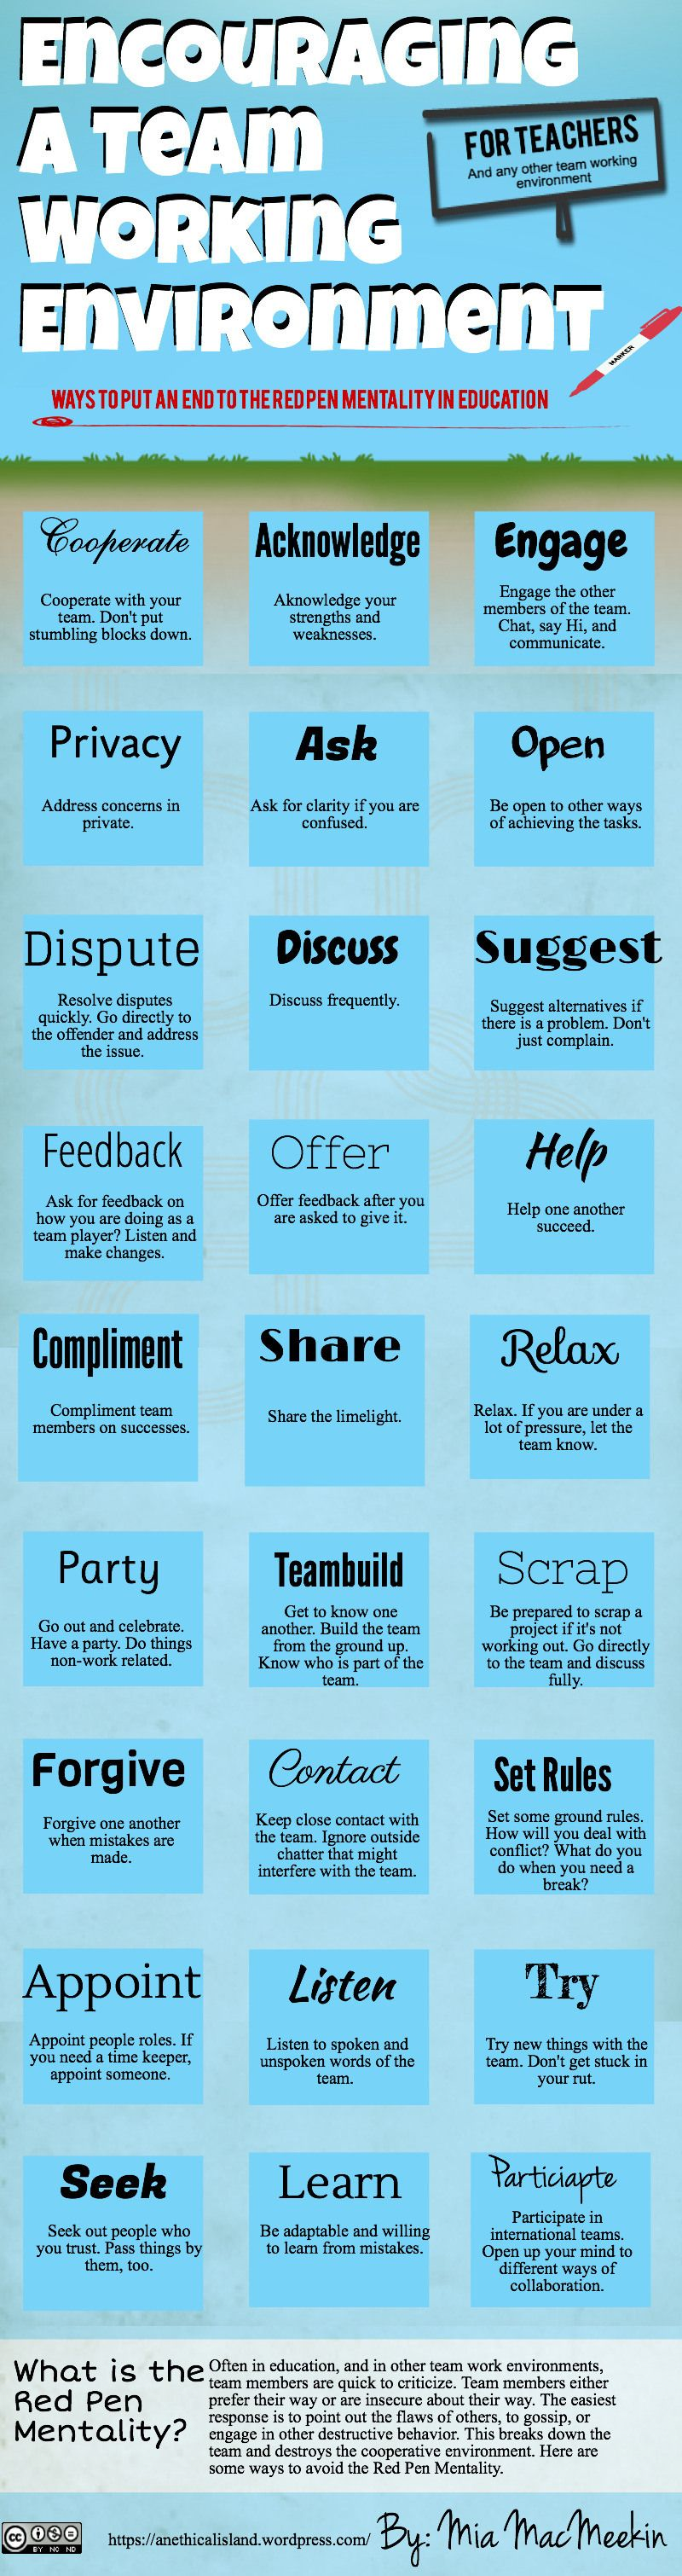 encourage a team working environment info graphic for teachers-- i was just thinking about how teachers need more PD in happily co-working  in a school